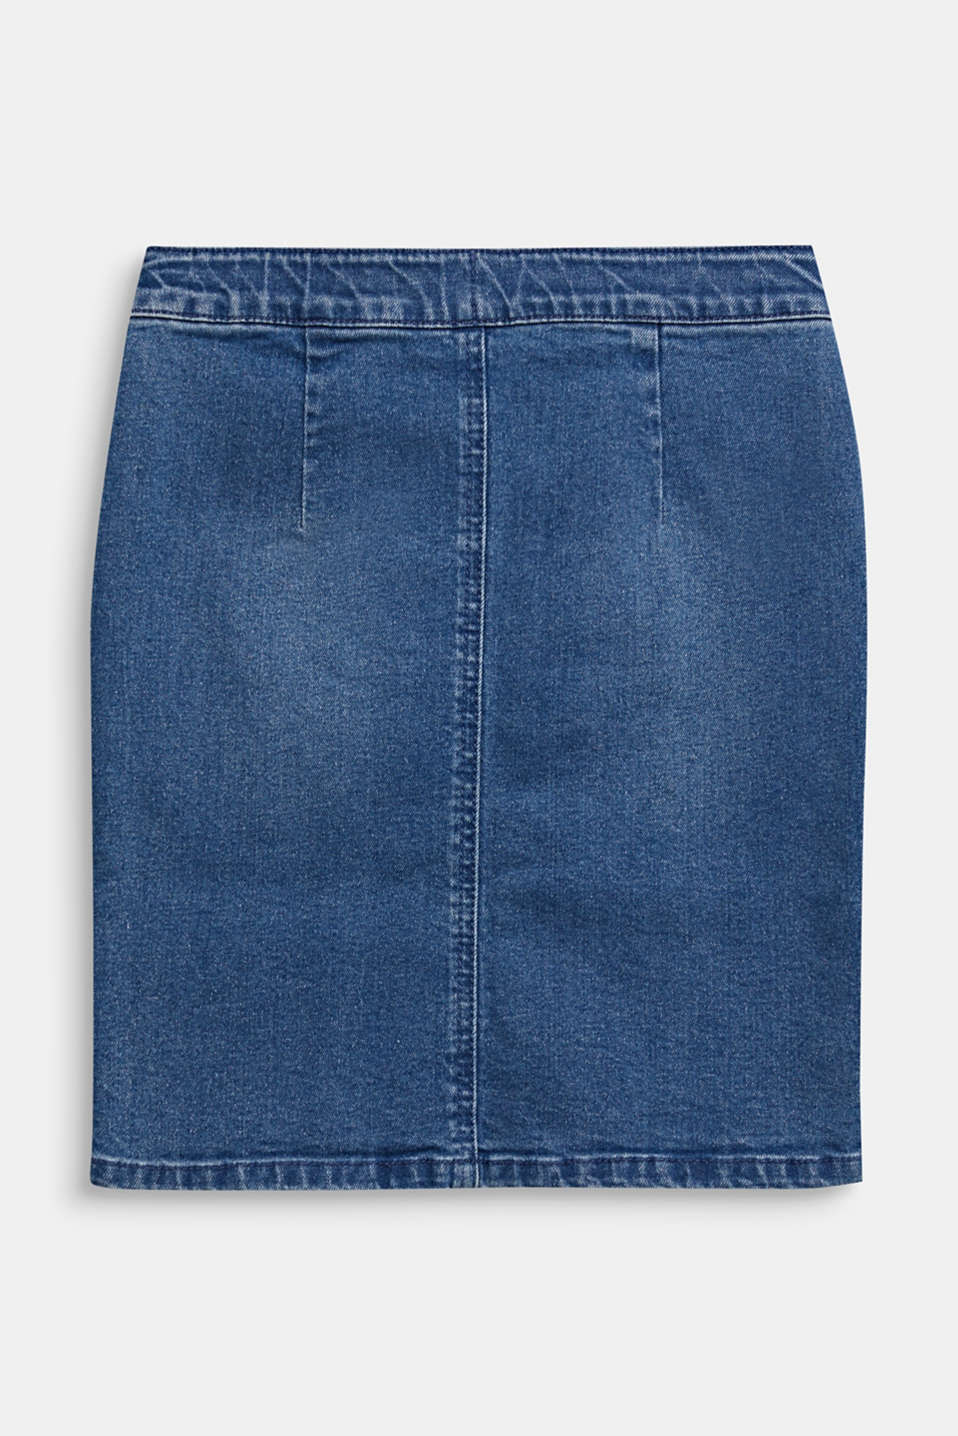 Denim skirt with a high-rise, adjustable waistband, LCLIGHT INDIGO D, detail image number 1